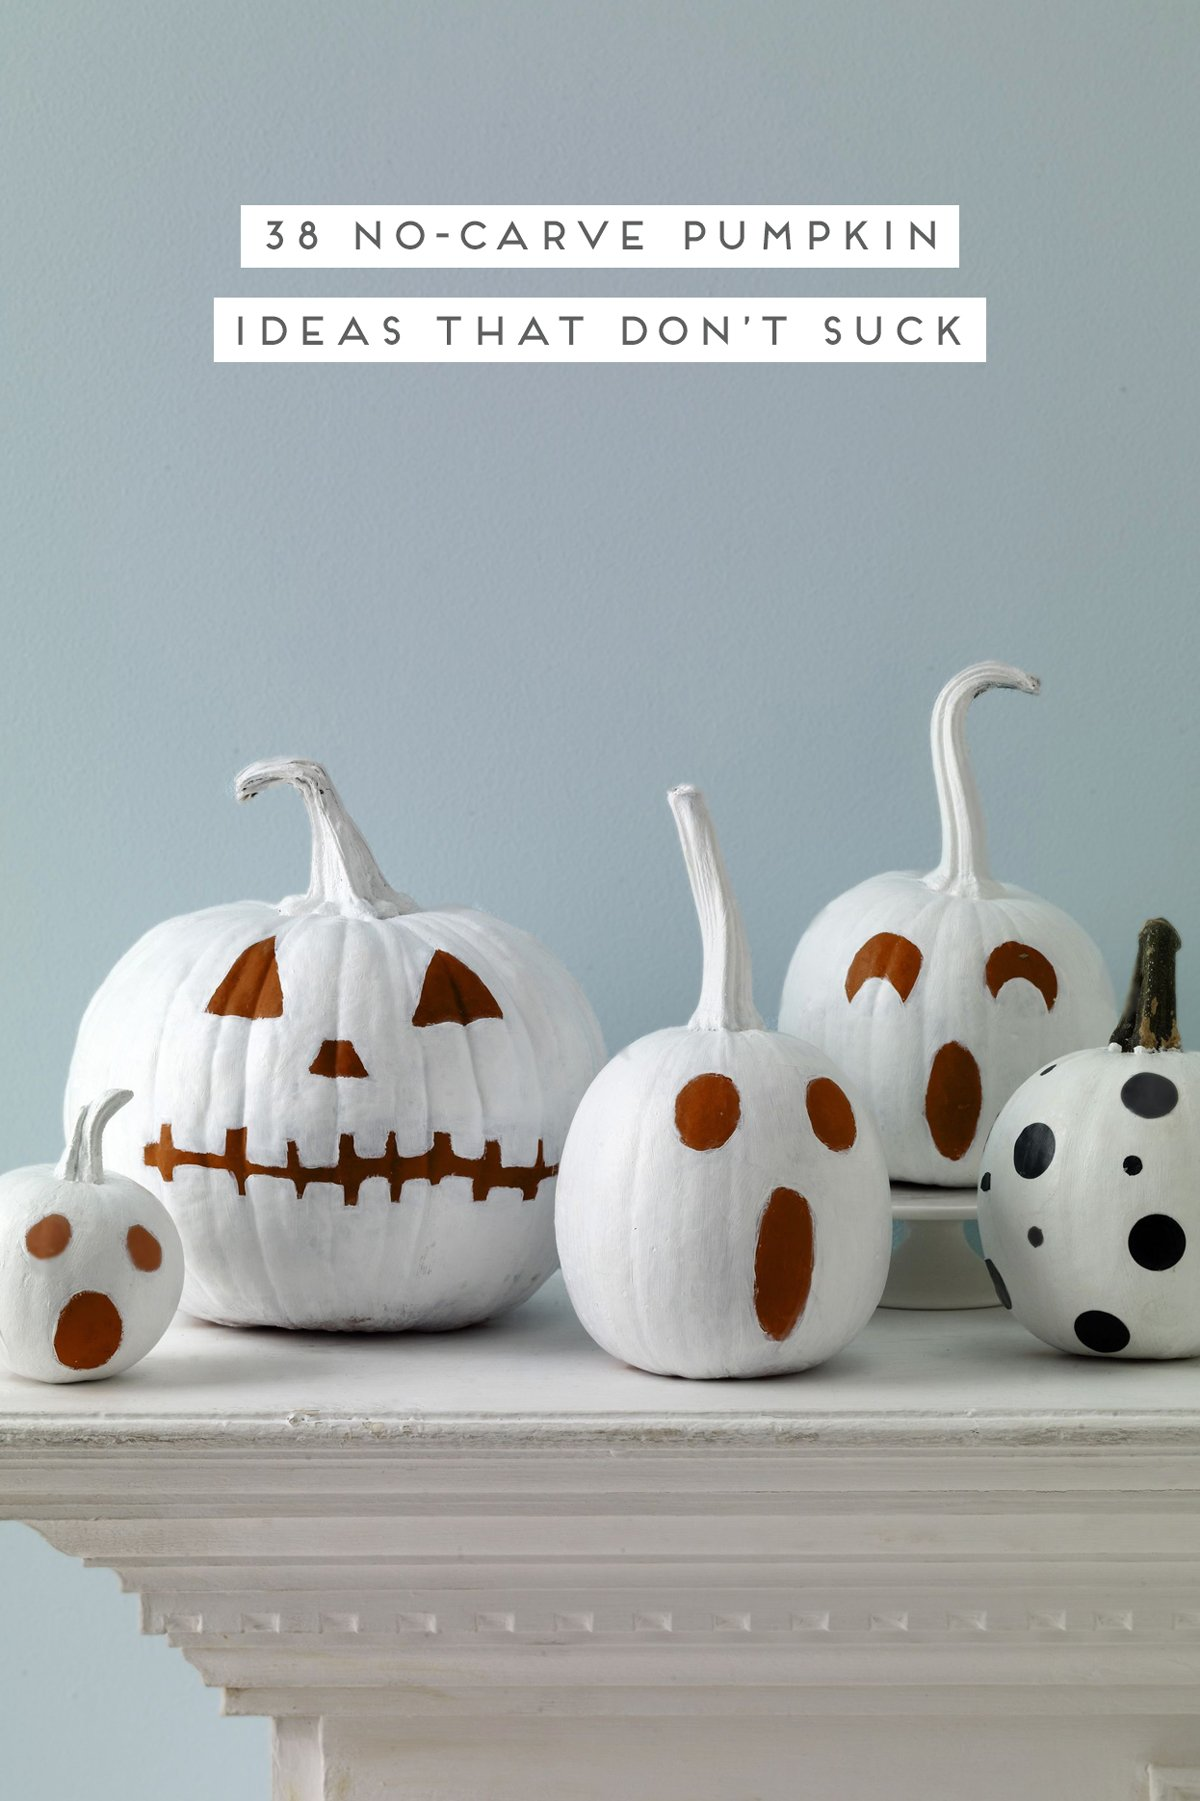 Image of no-carve pumpkins using white paint to create quirky pumpkin faces.